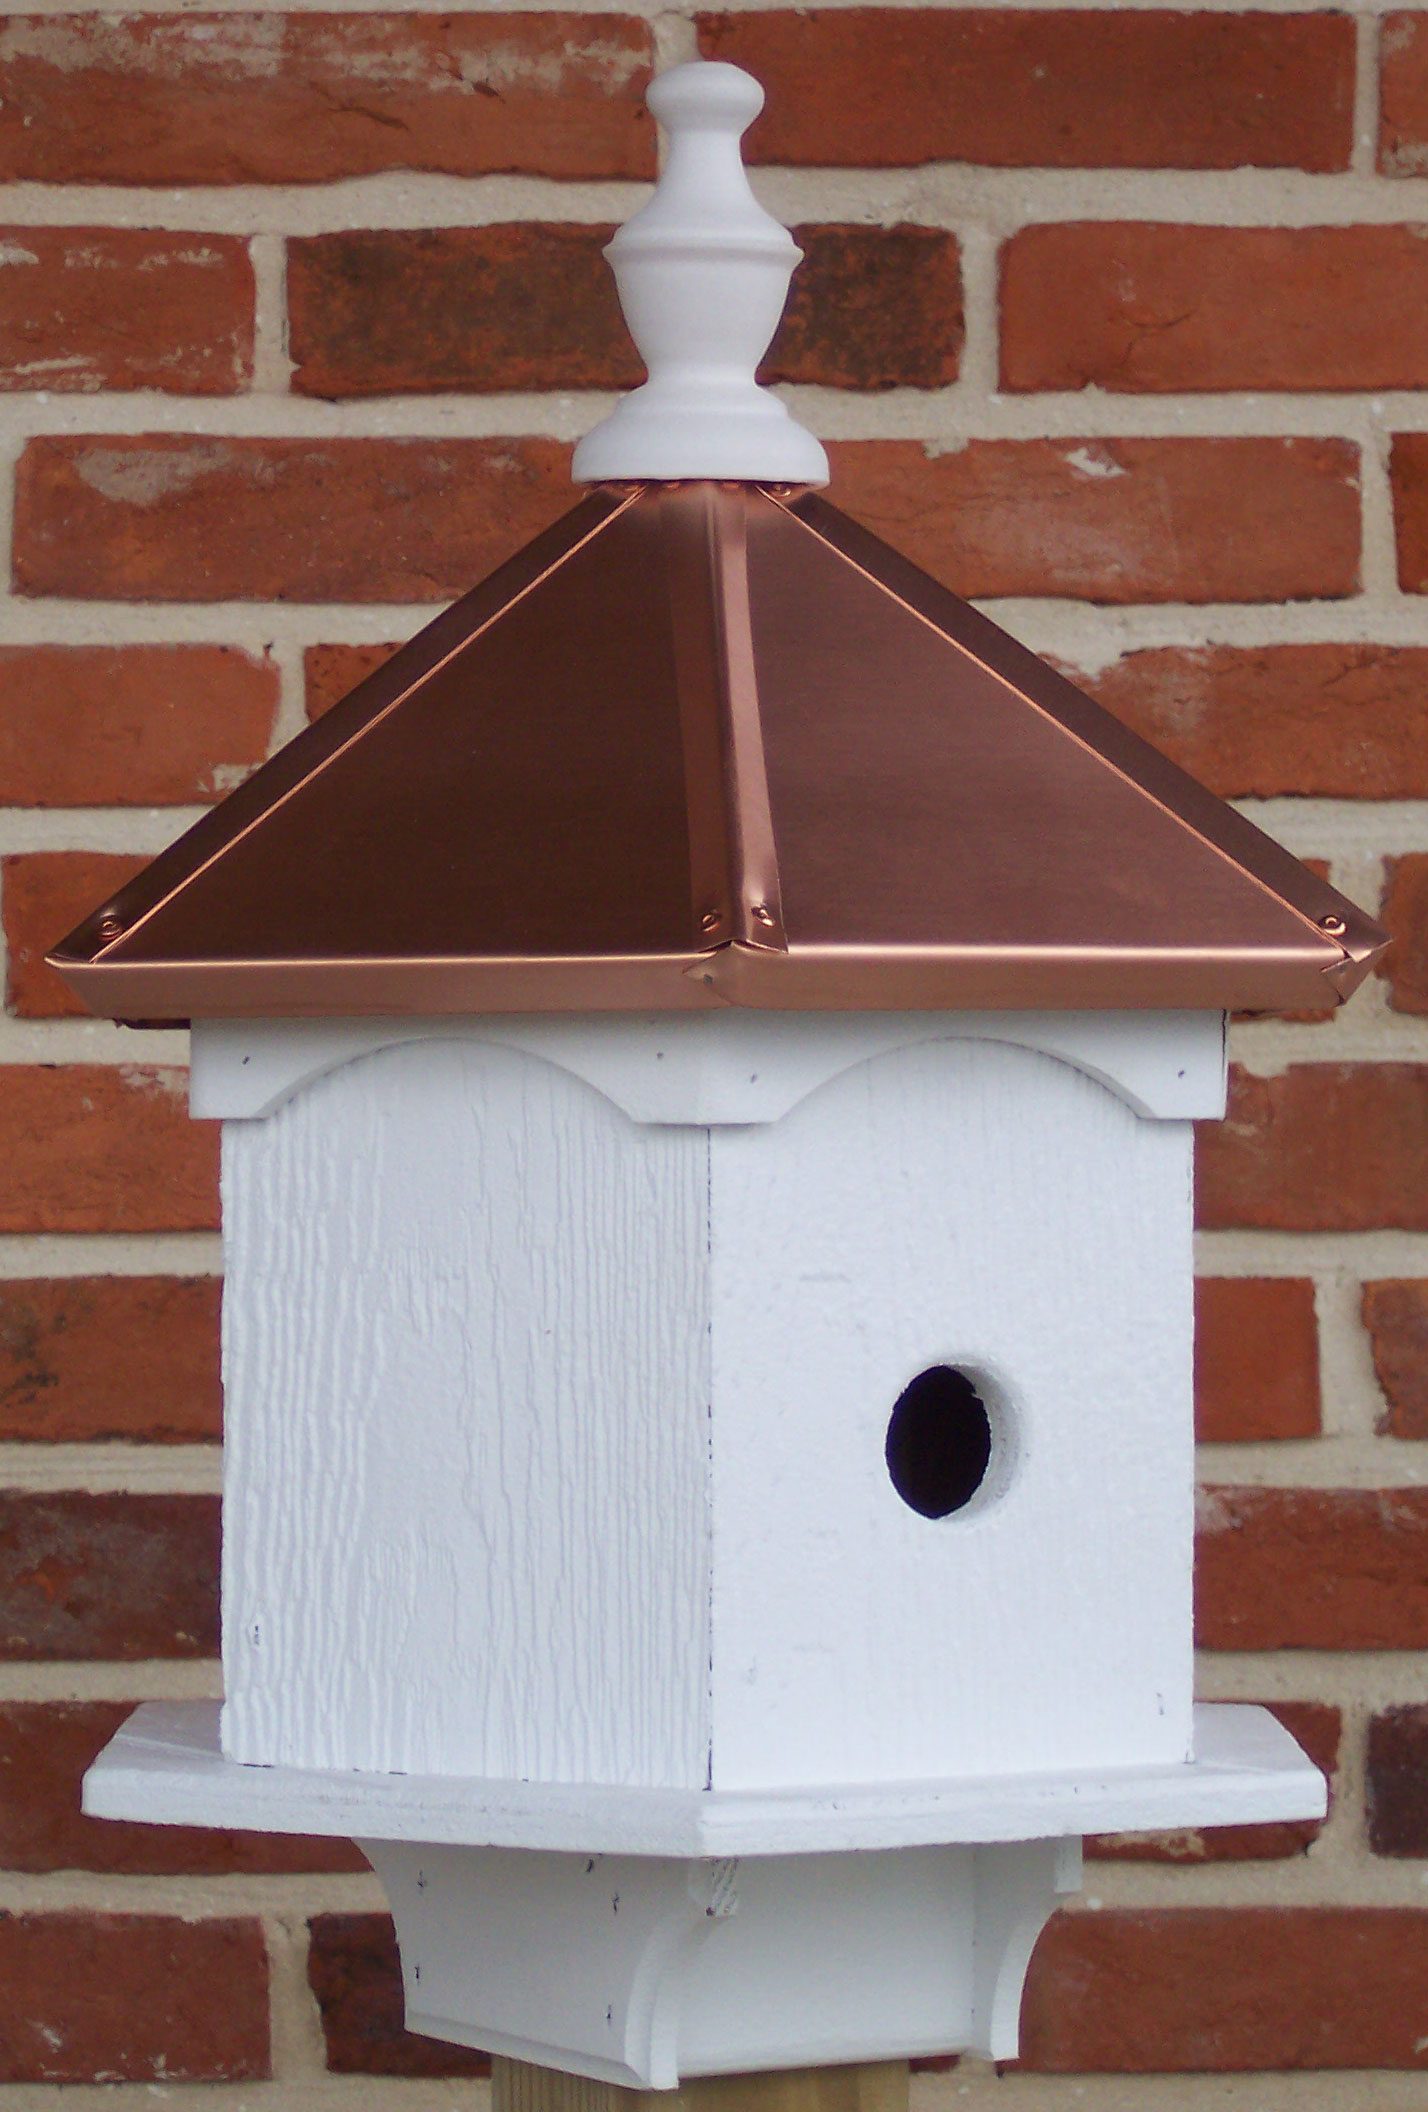 Image of: Copper Roof Birdhouse Style